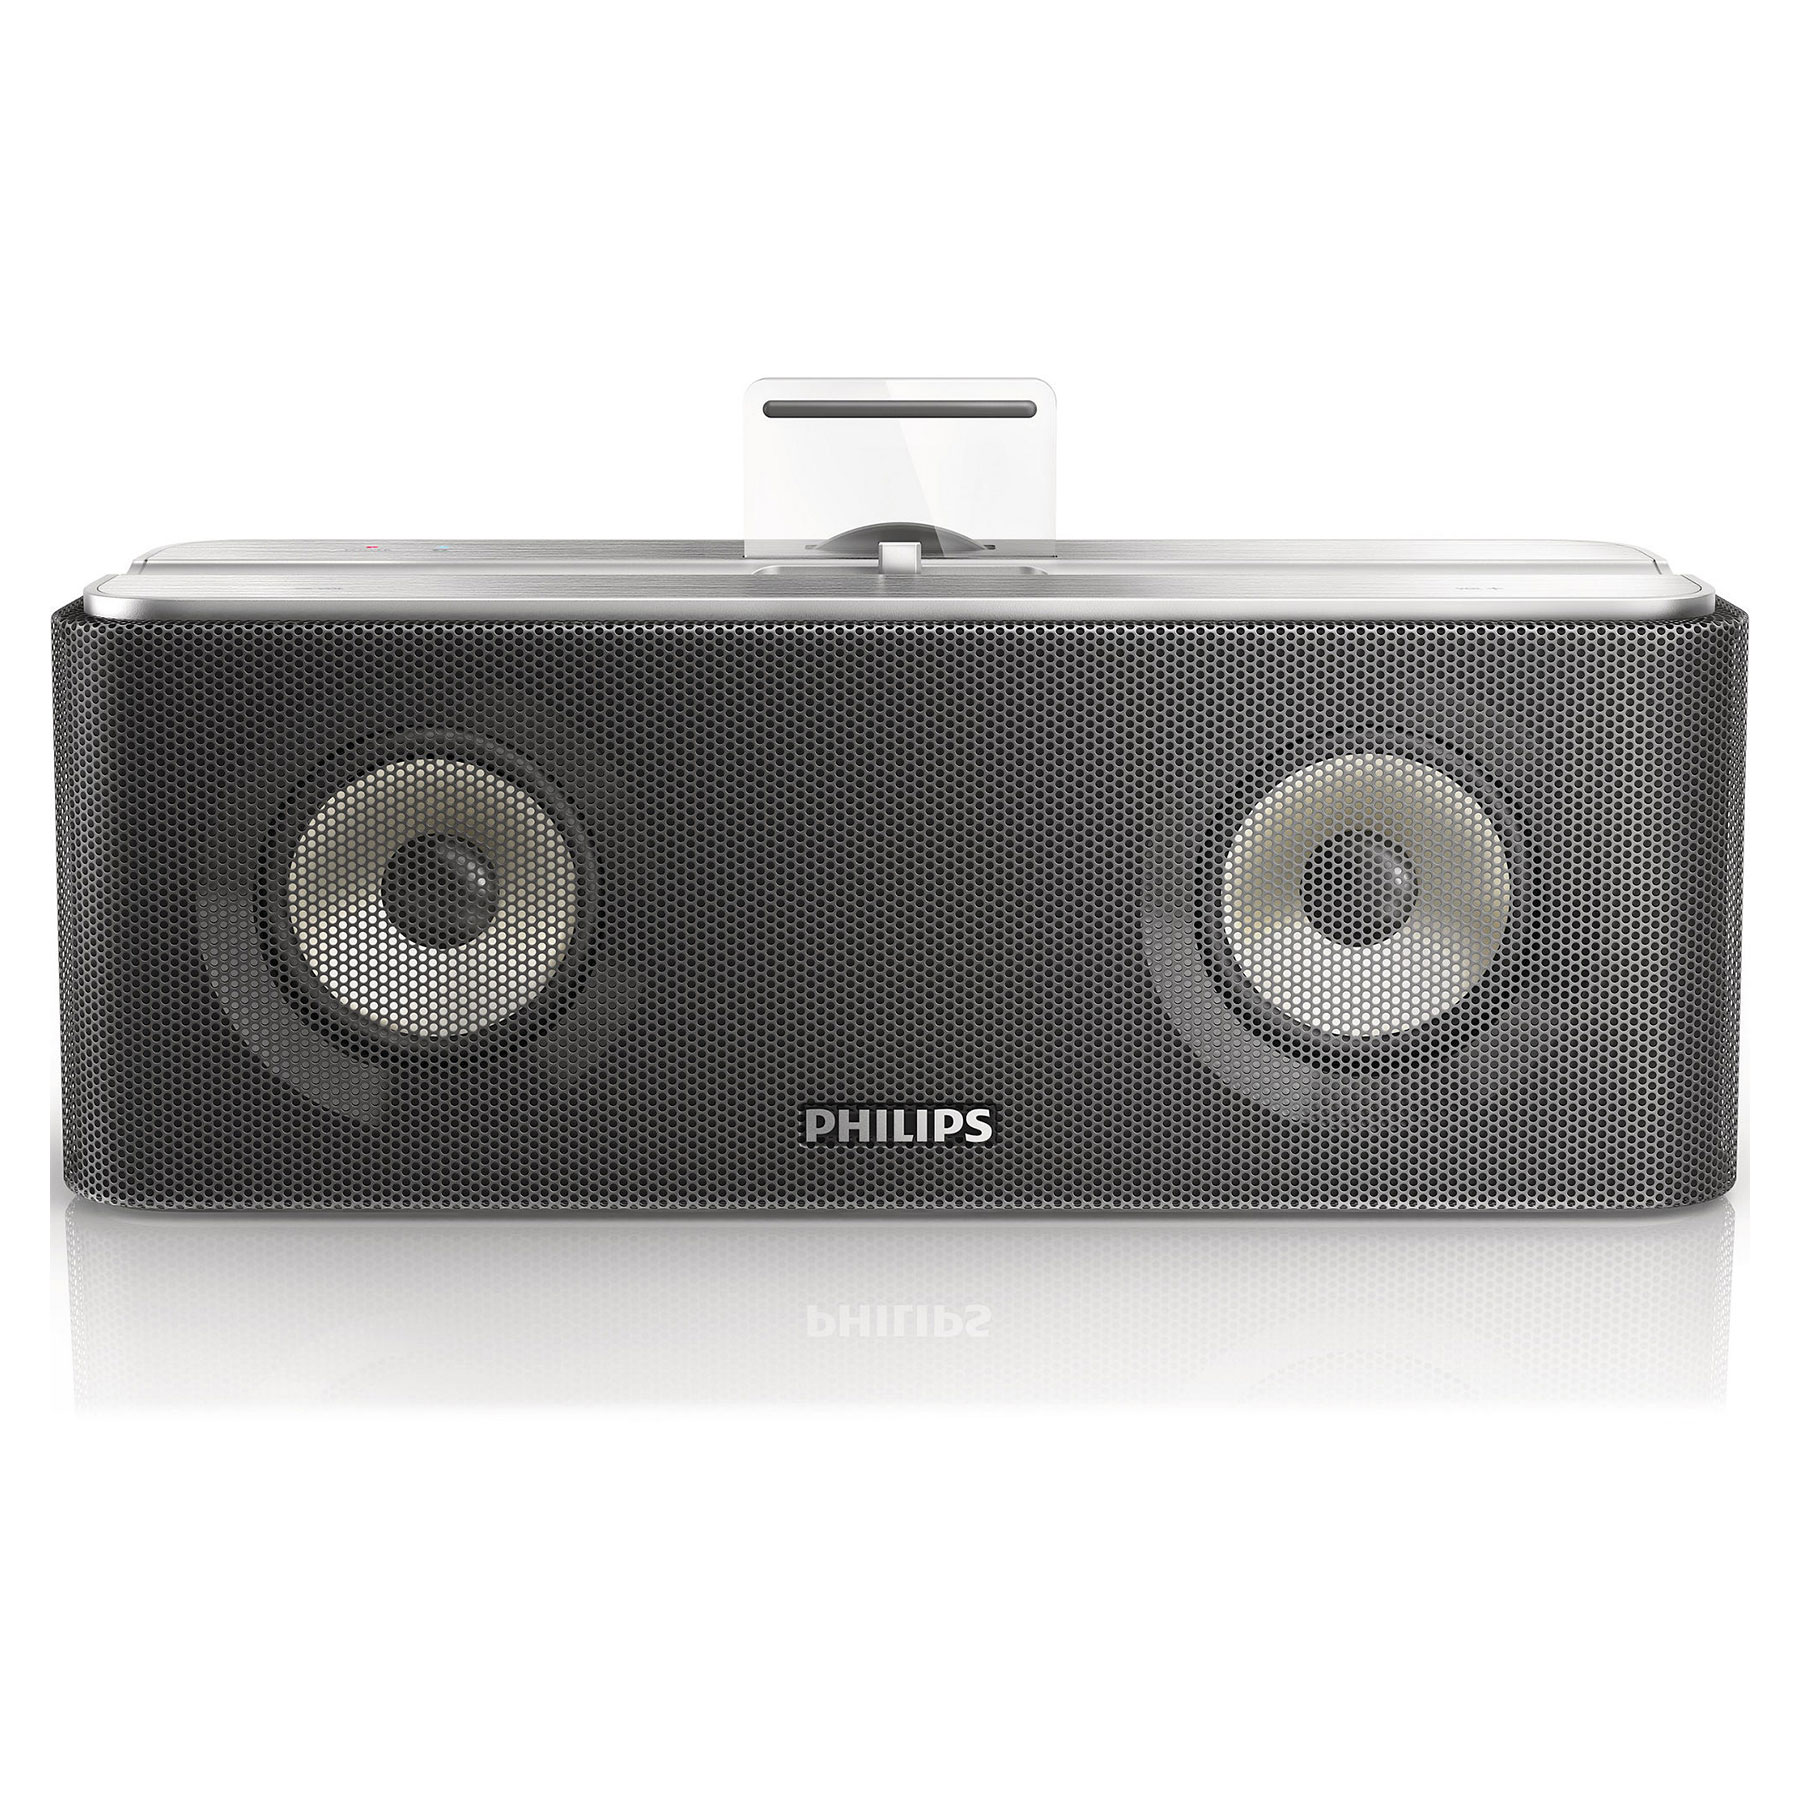 philips as360 dock enceinte bluetooth philips sur. Black Bedroom Furniture Sets. Home Design Ideas